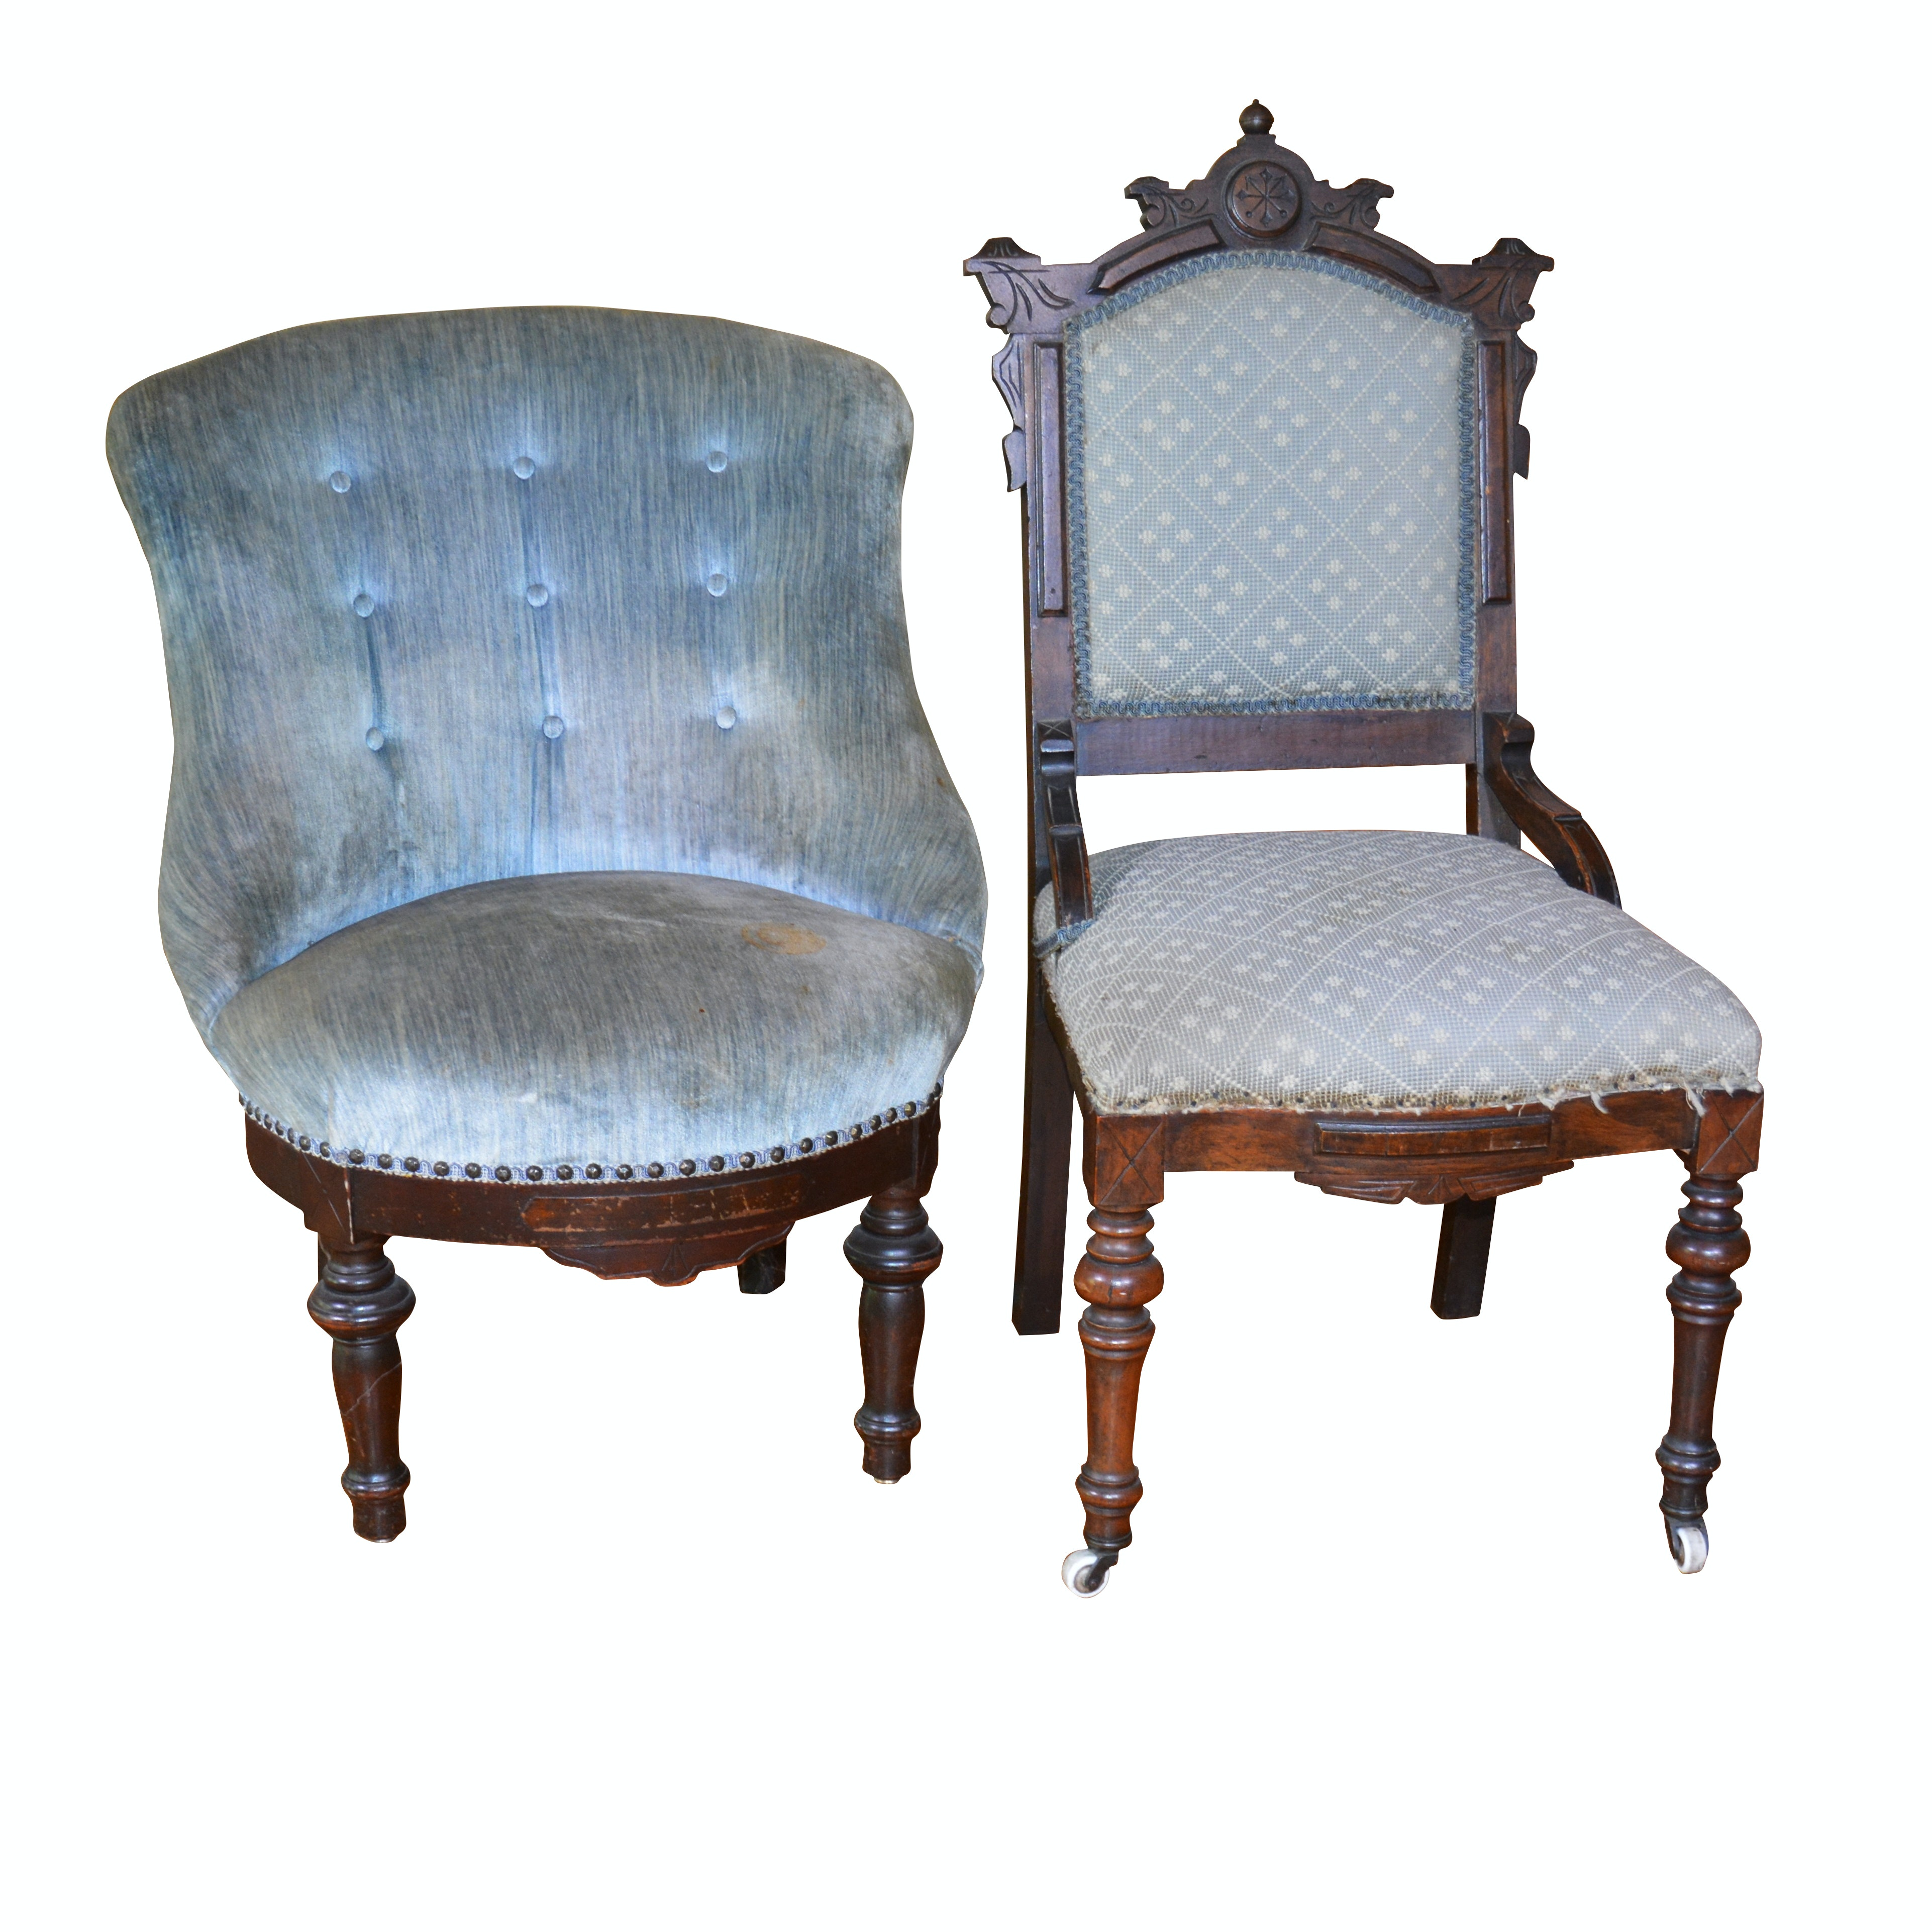 Victorian Upholstered Walnut Parlor Chairs, Mid to Late 19th Century